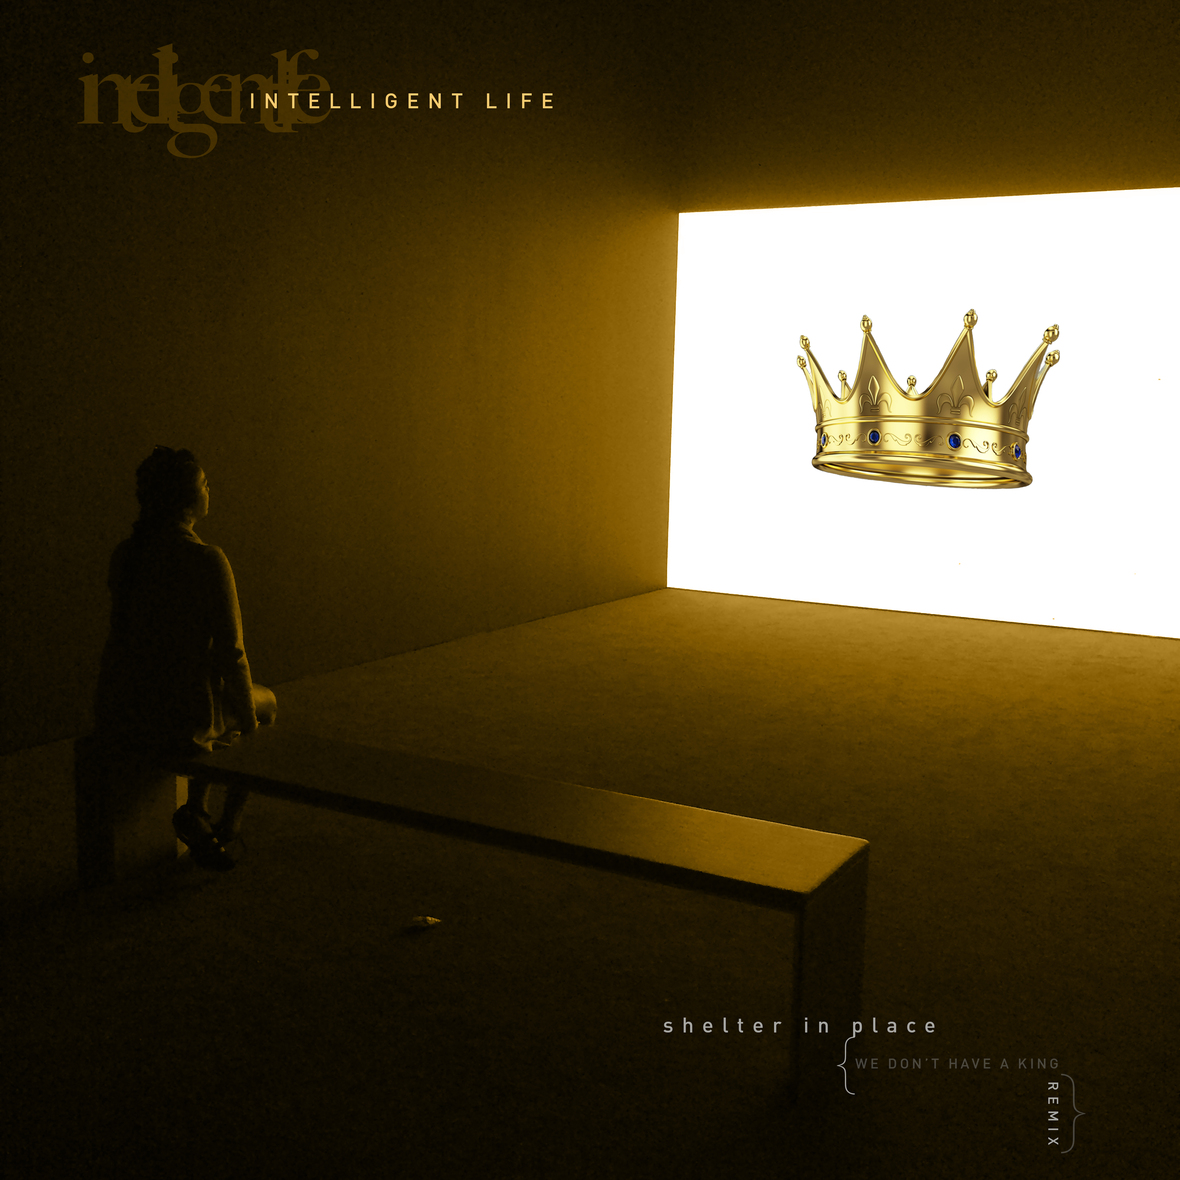 Shelter_In_Place__We_don_t_have_a_king_Remix_